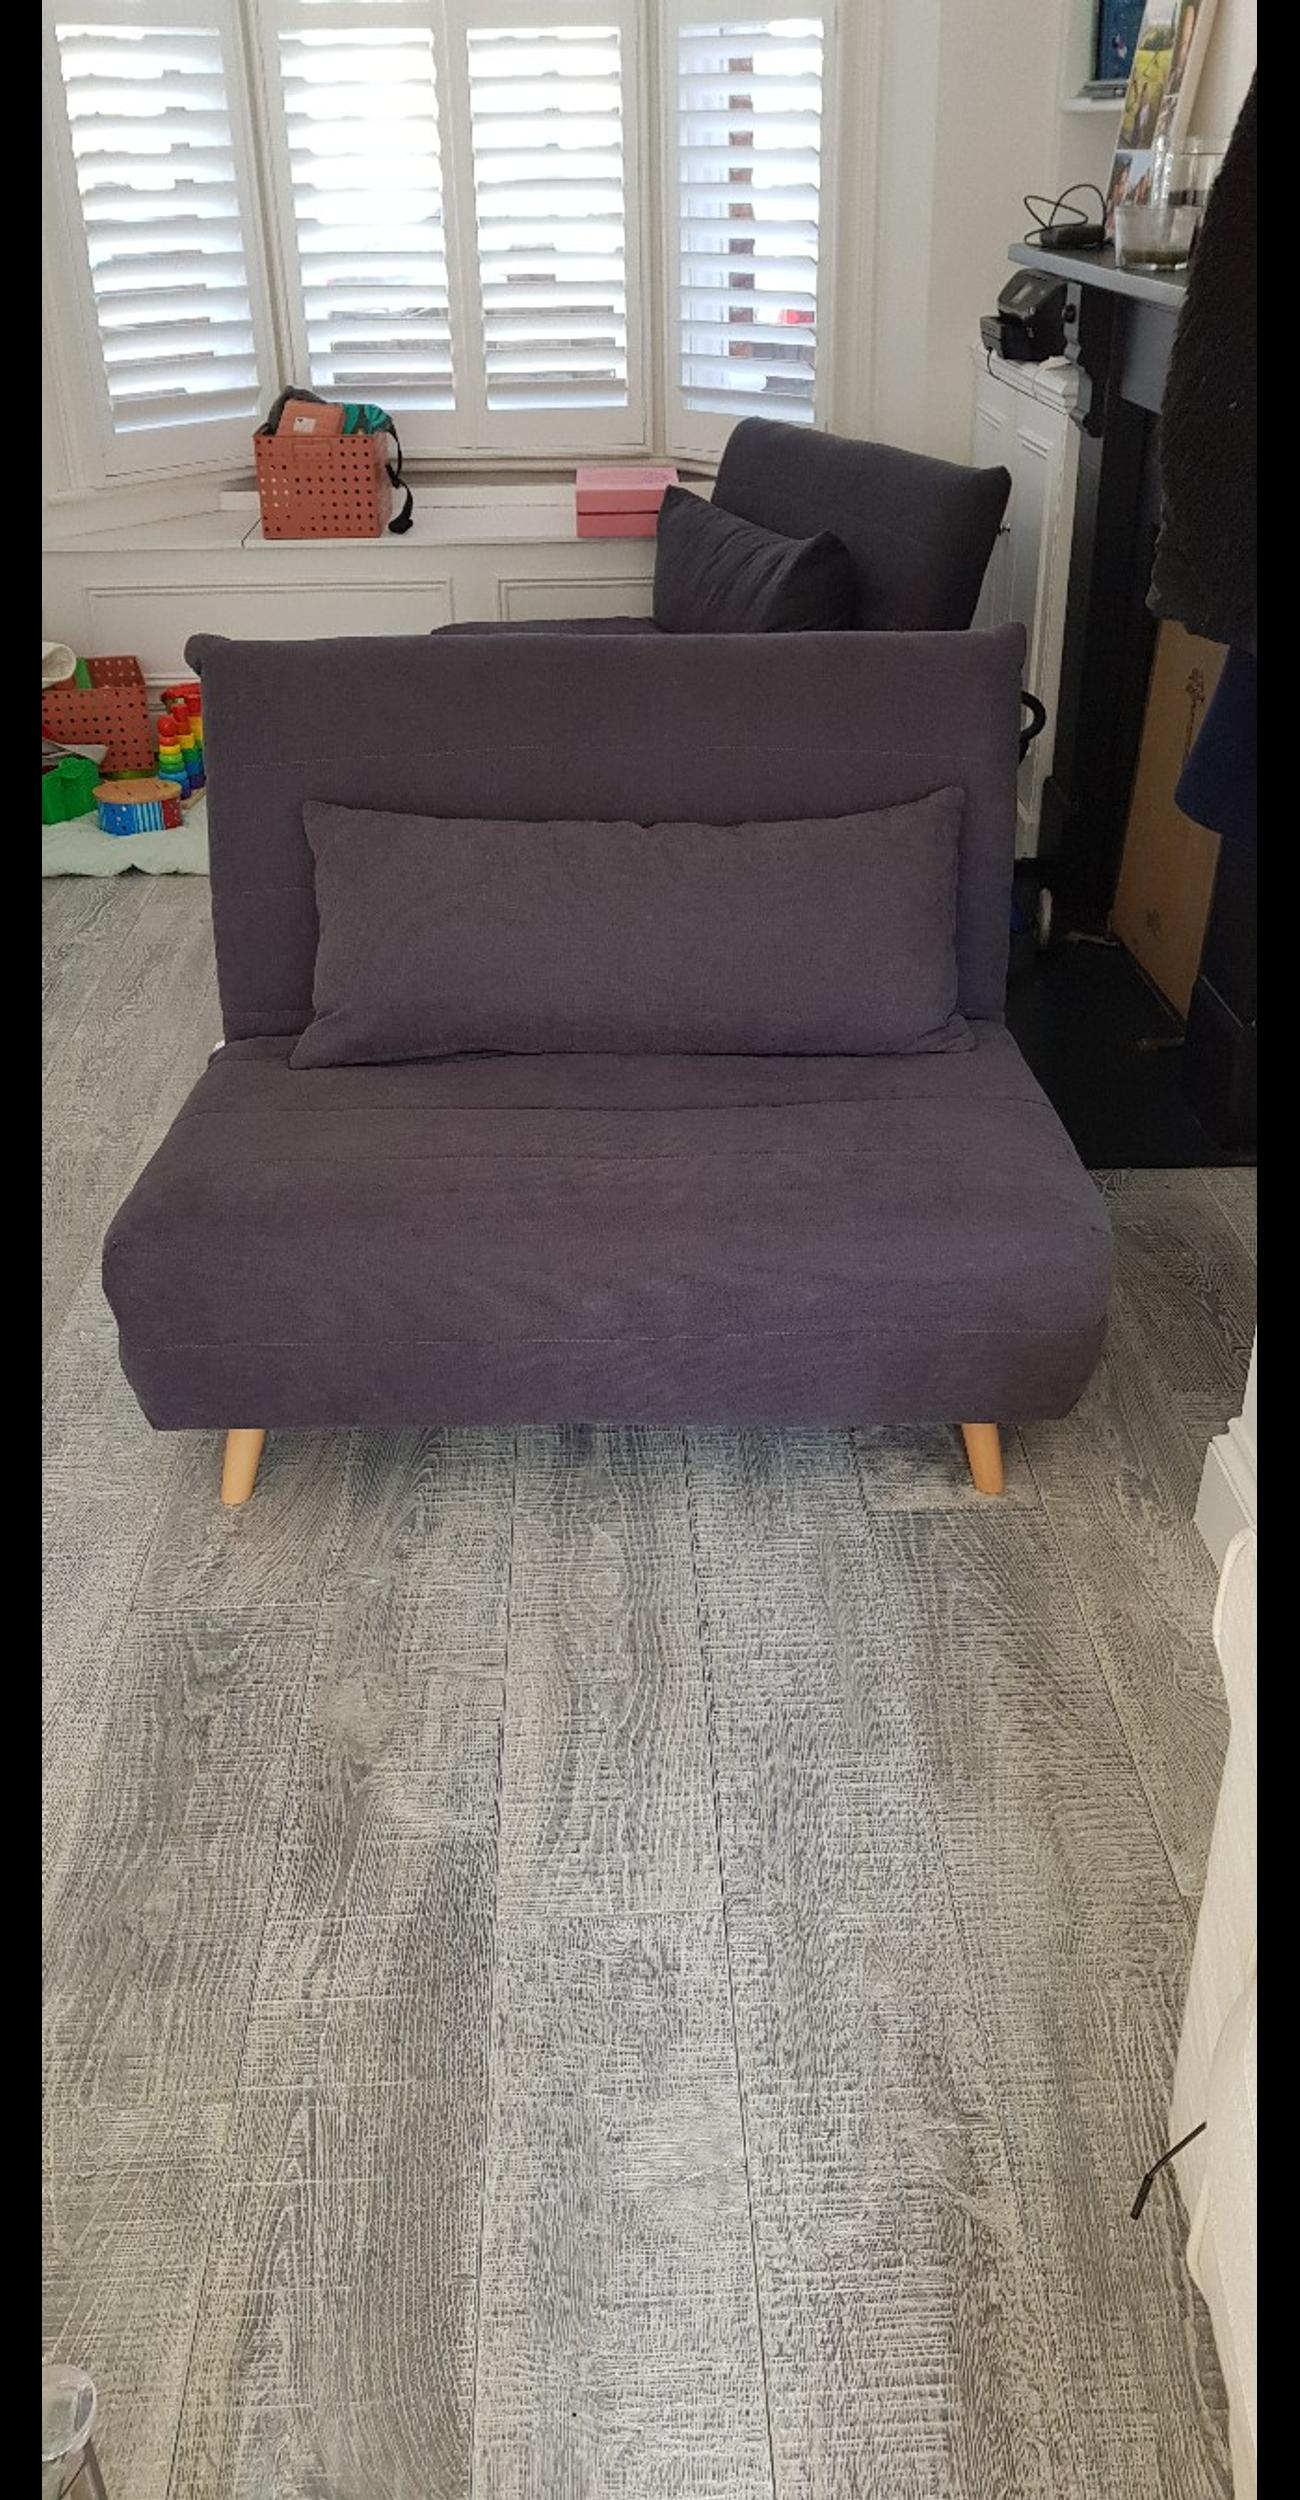 Maison Du Monde Nio Daybed Sofa Bed In Sw6 London For